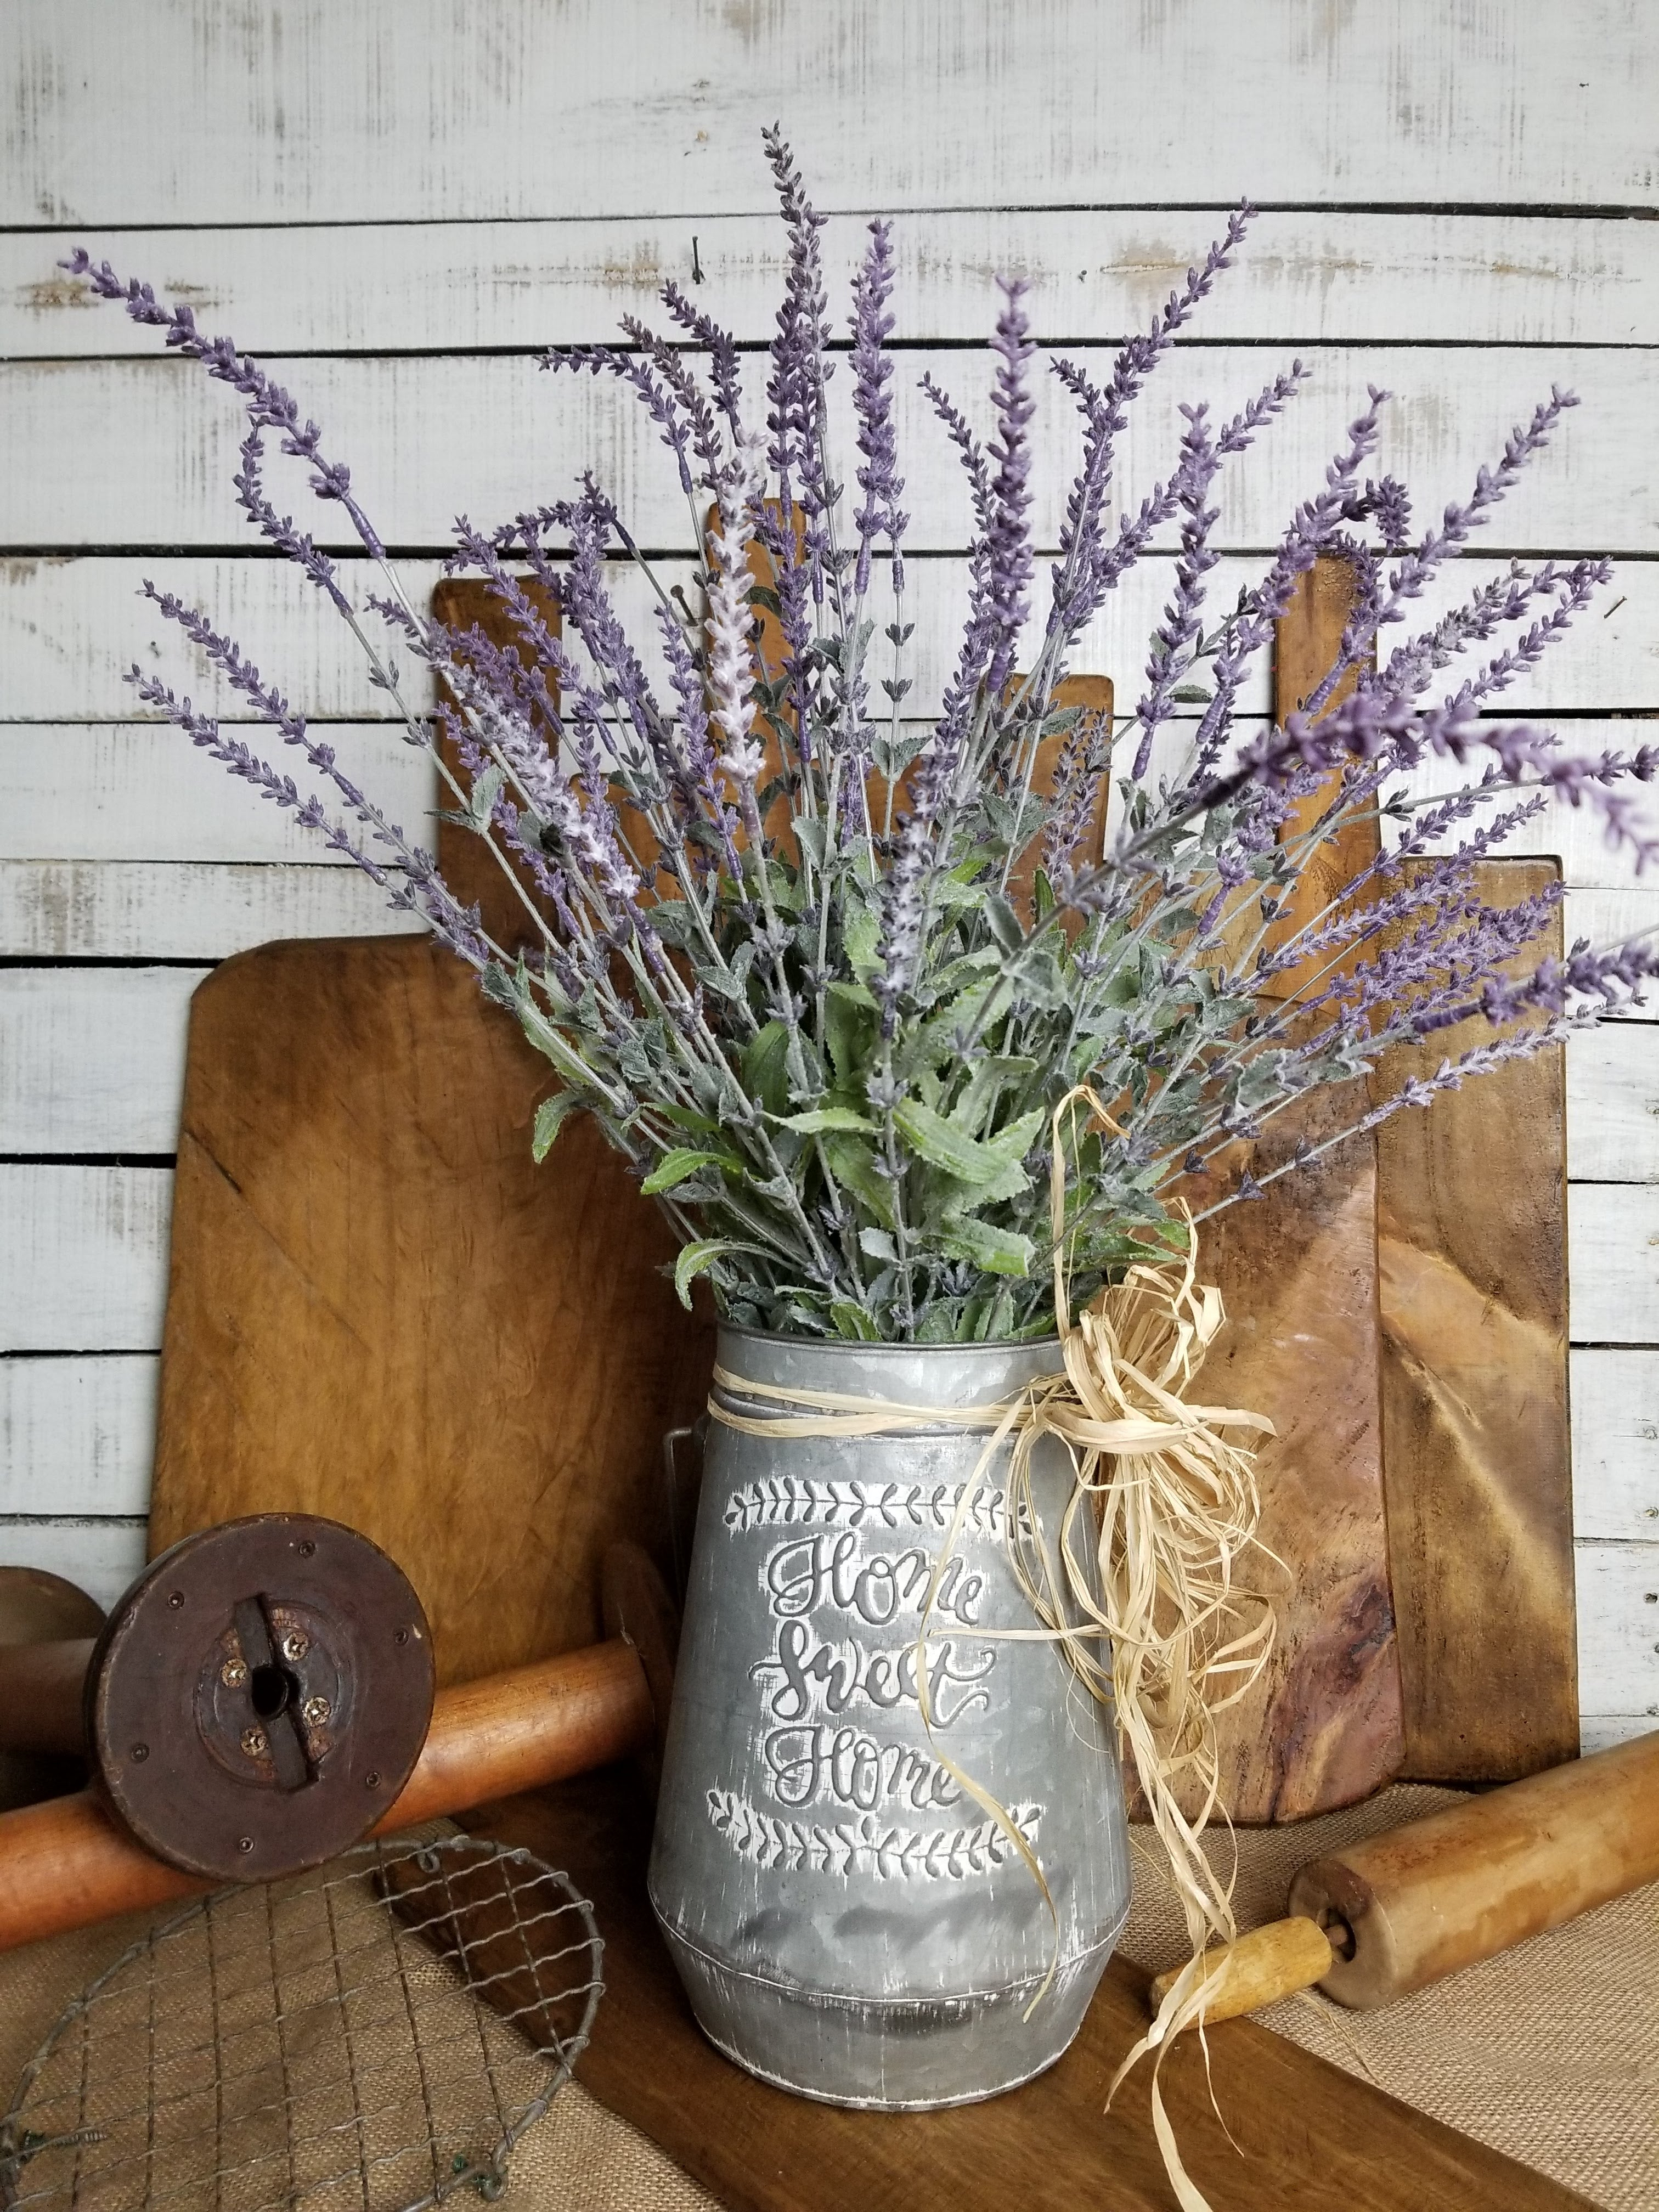 Farmhouse Style Home Sweet Home Floral Arrangement